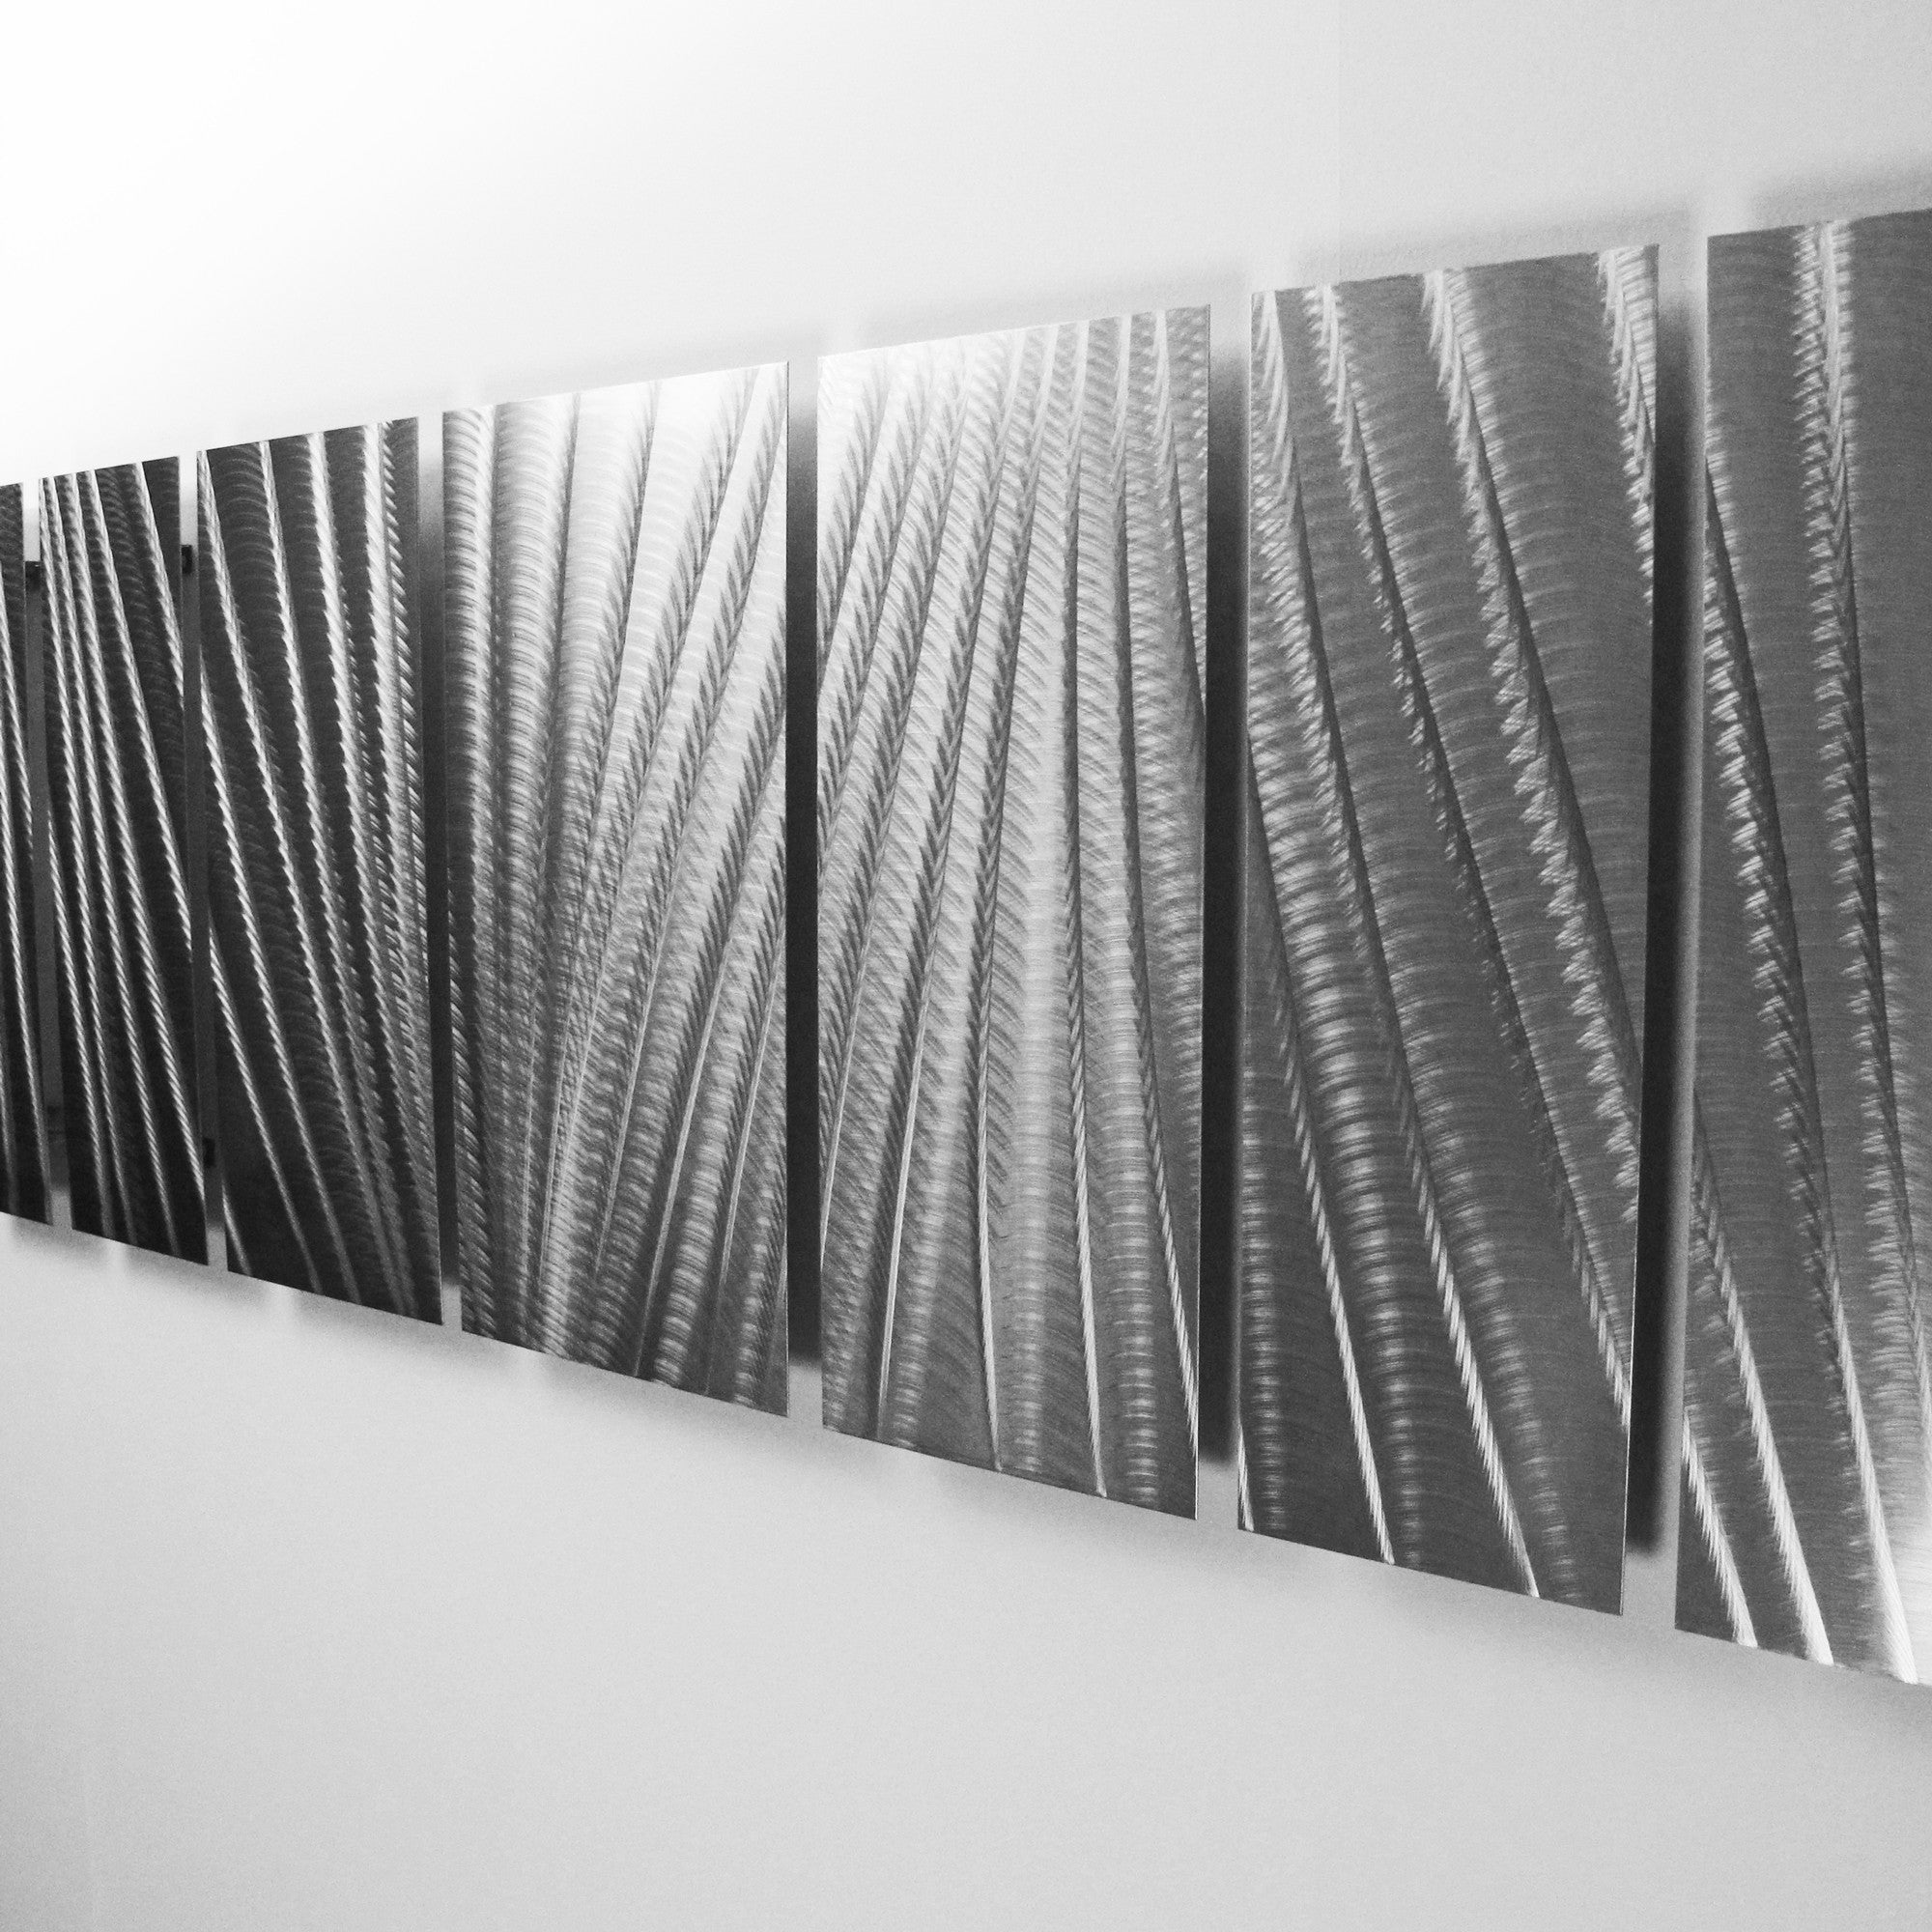 main attraction x large earthtone silver modern abstract  -  modern abstract metal wall art detail right